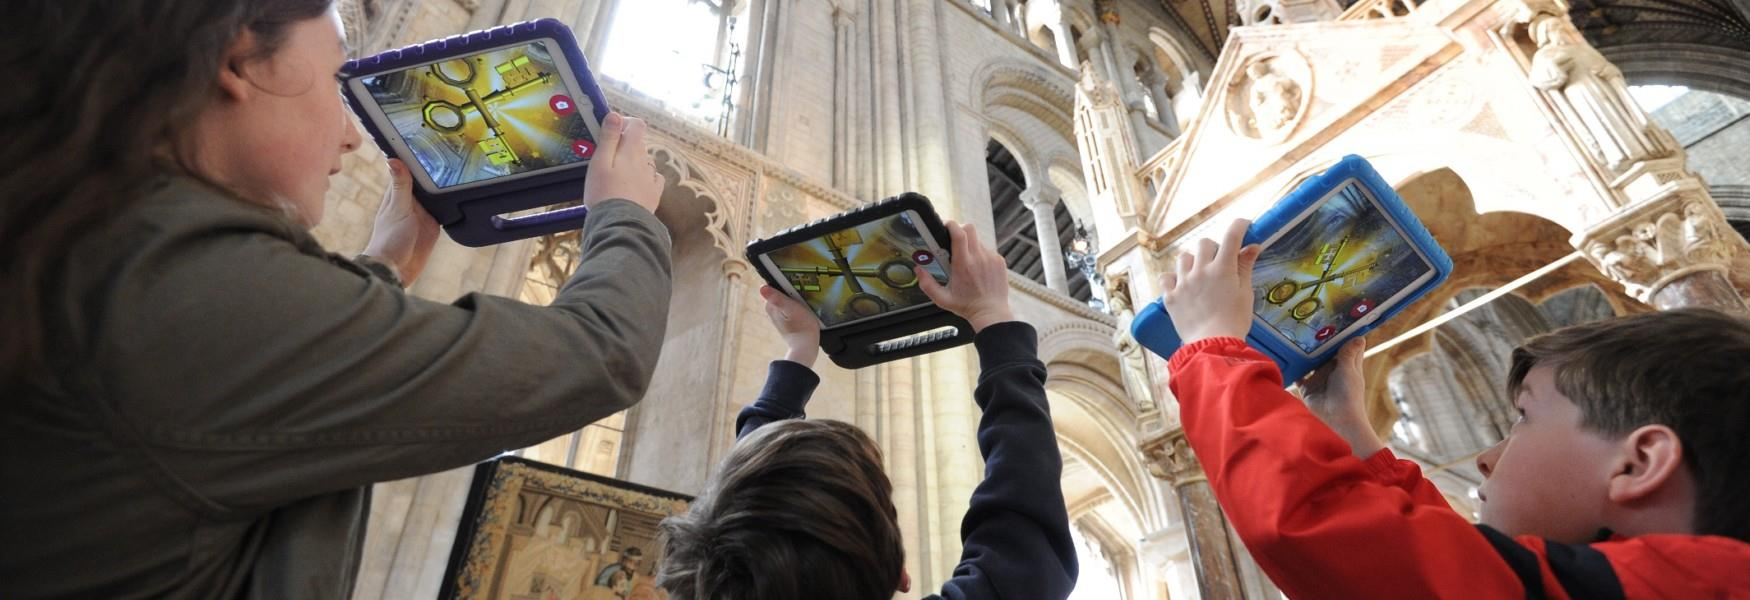 Visitors using a virtual reality device in the Cathedral